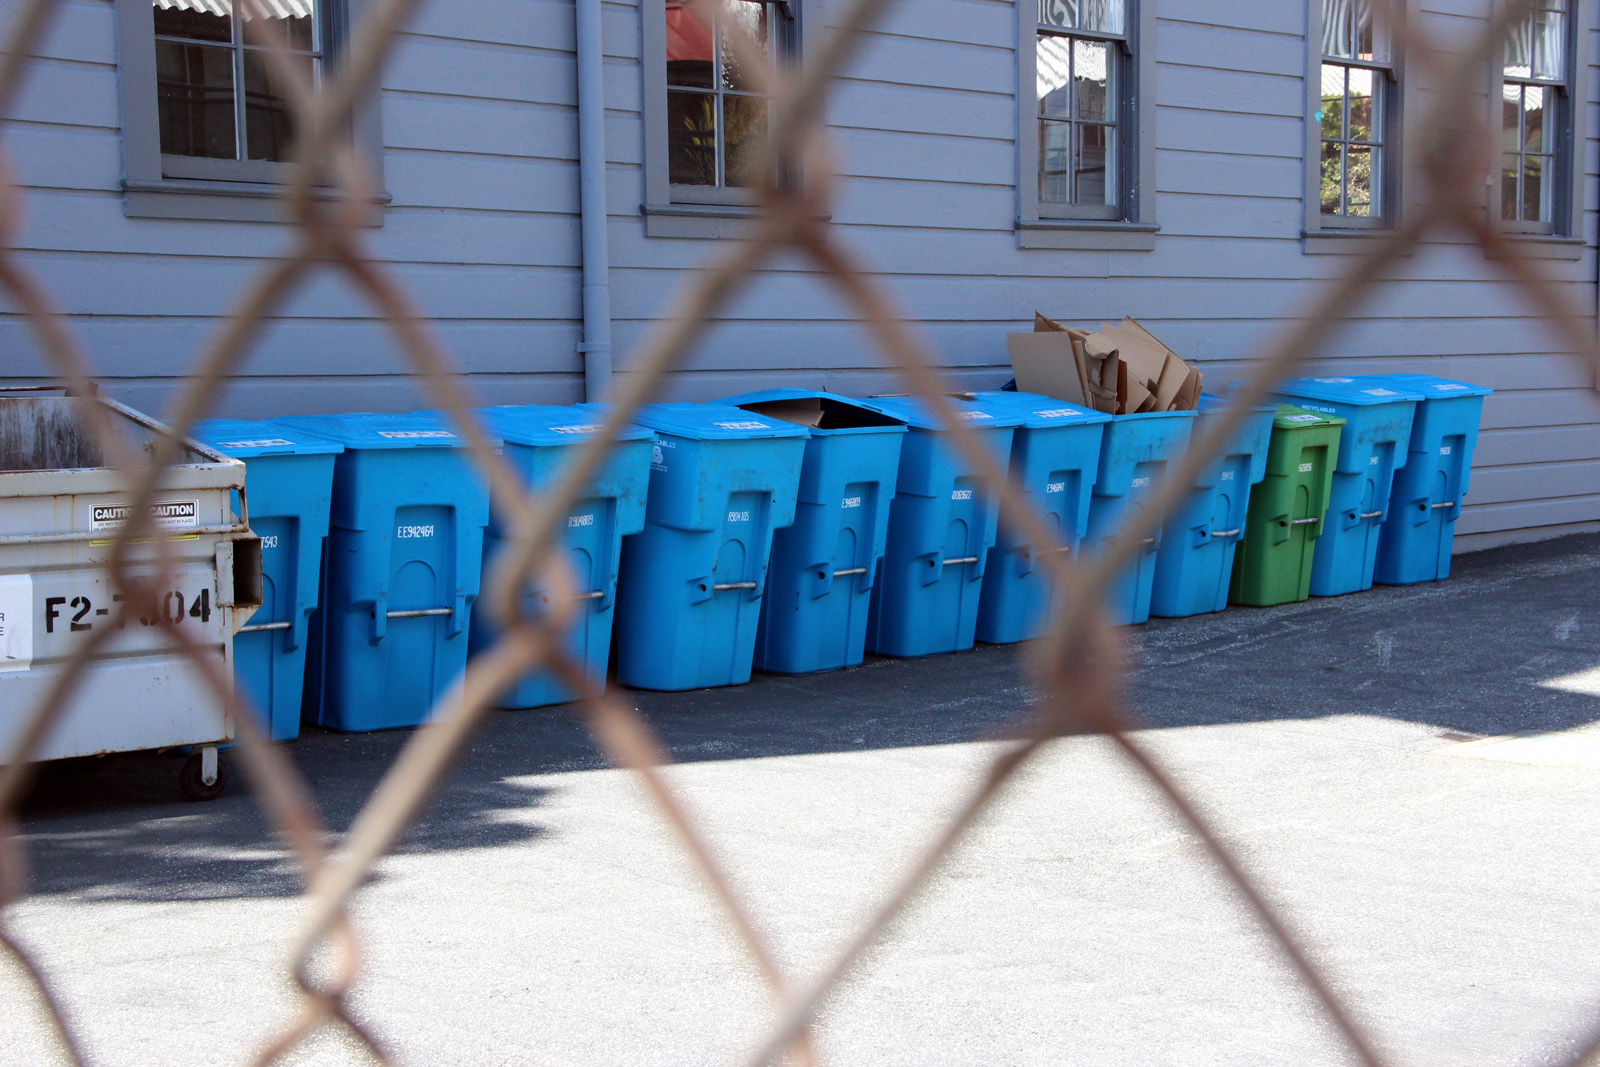 Recology recycling cans